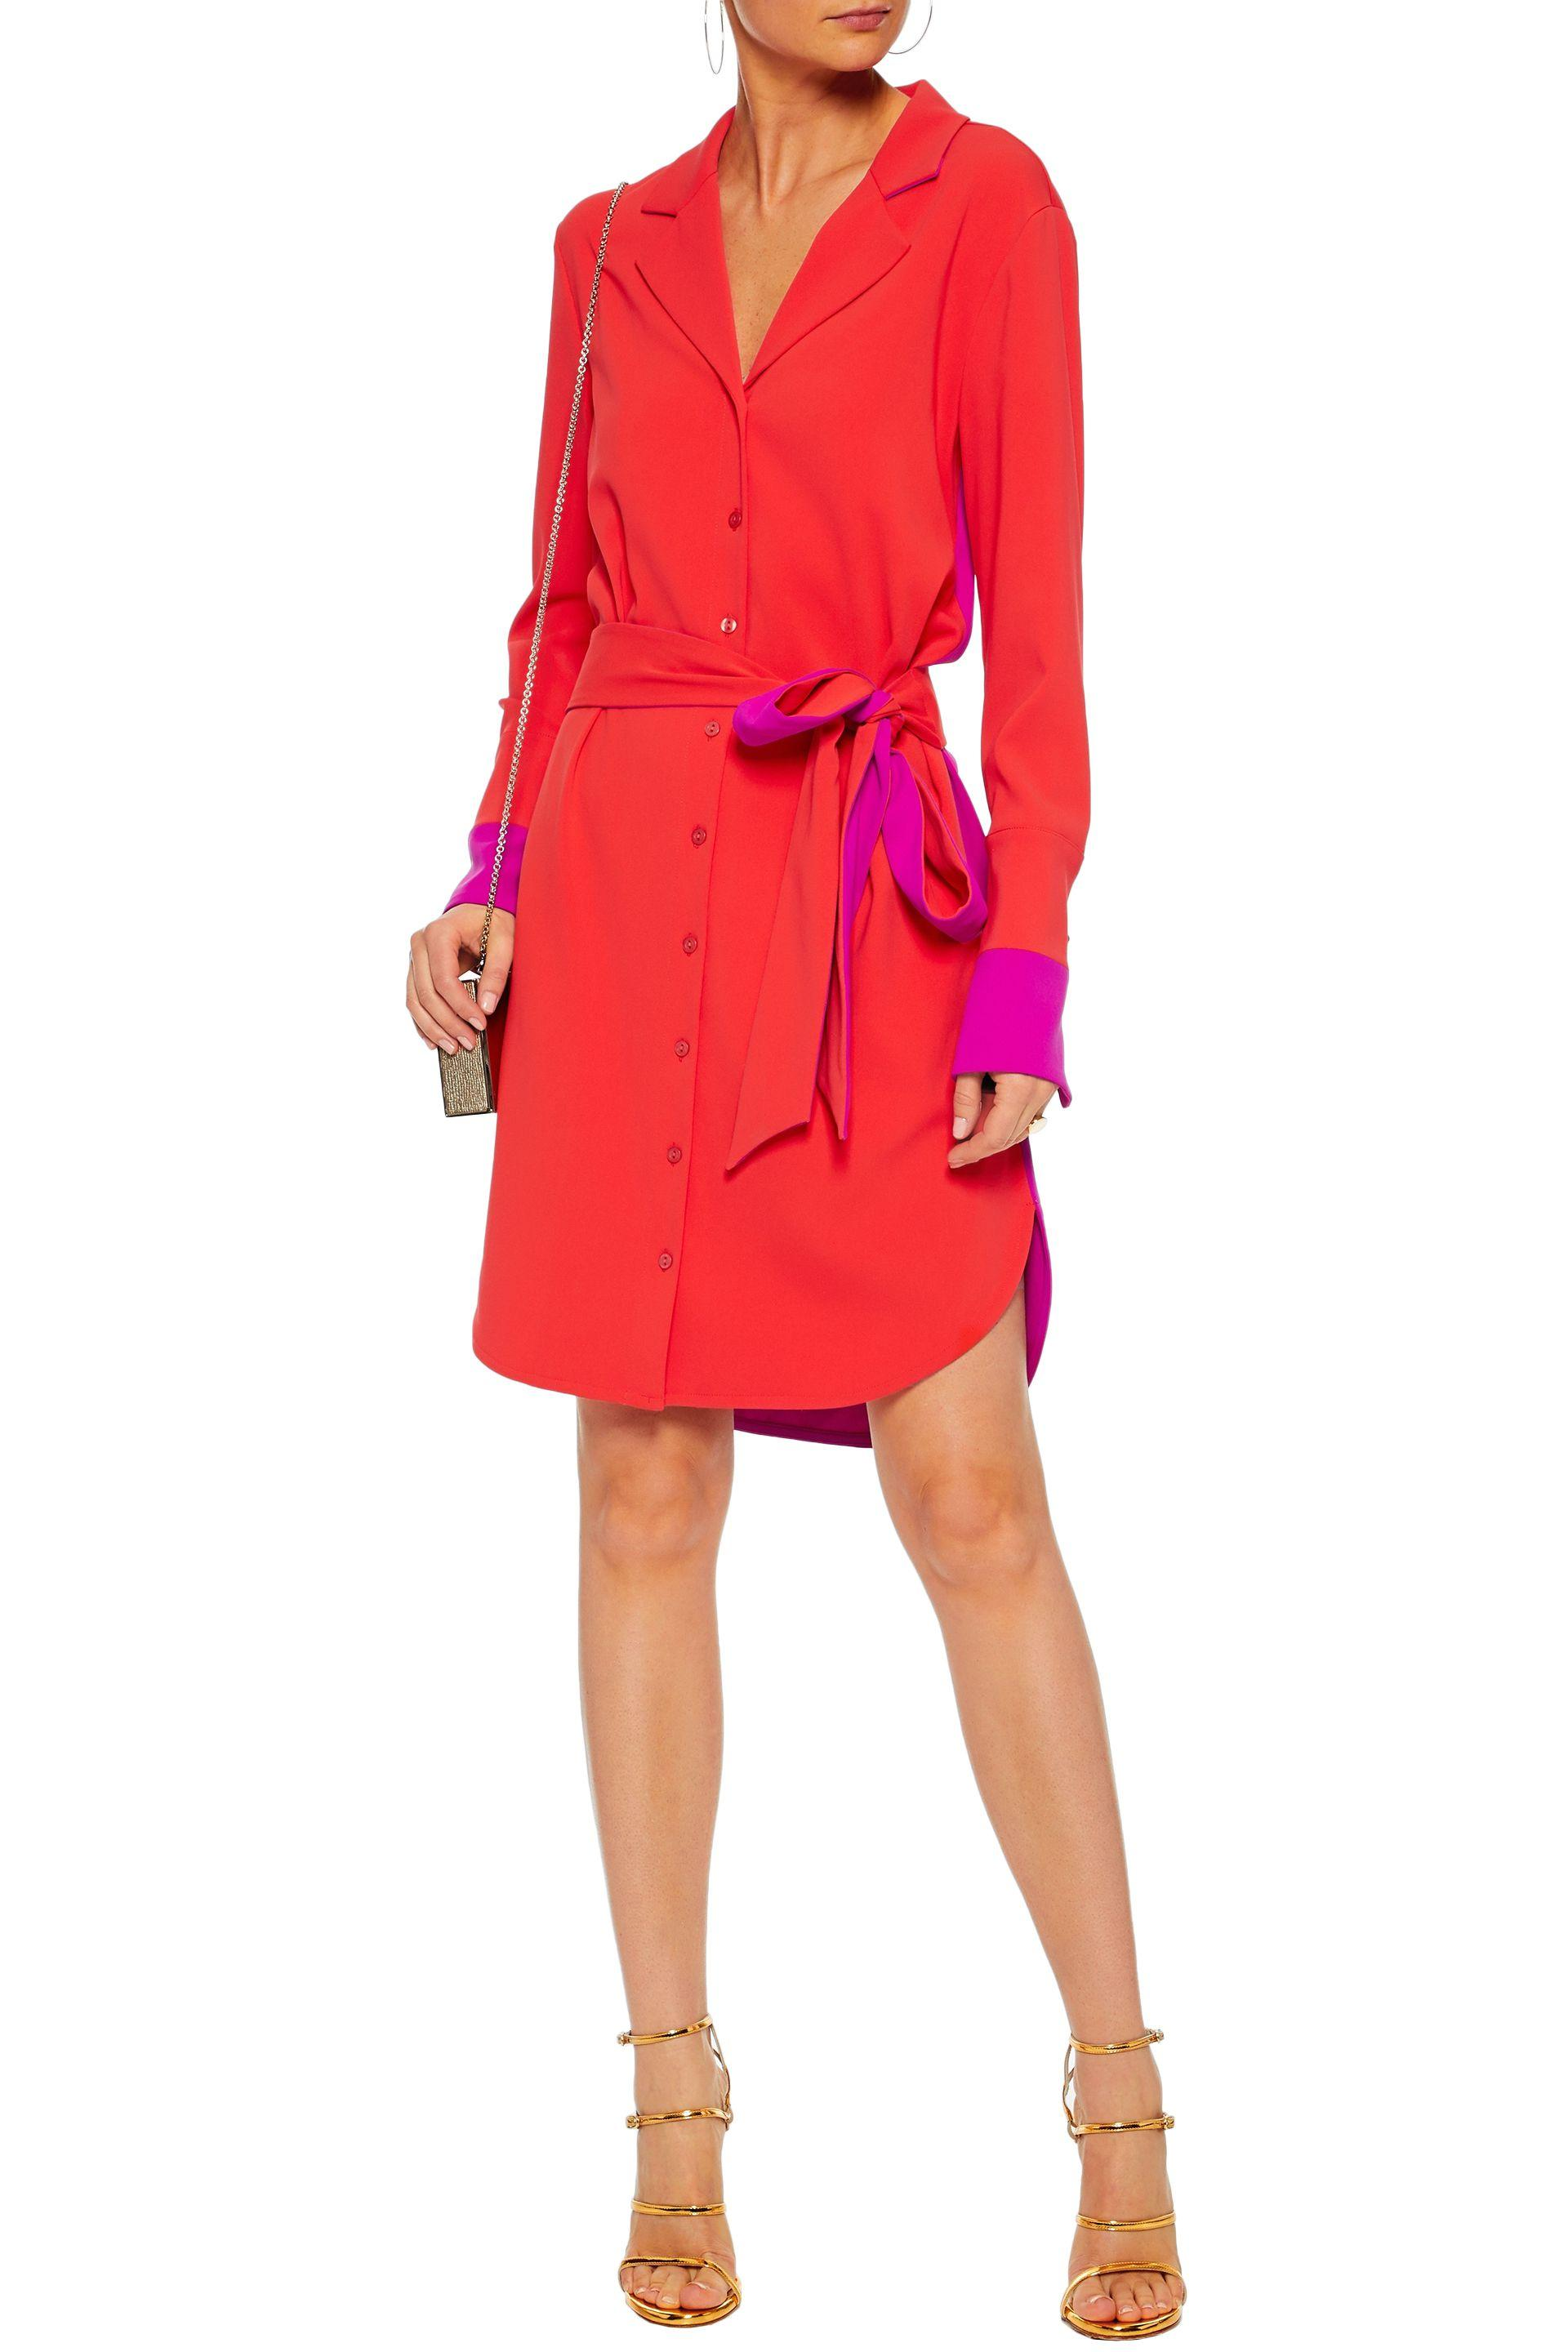 5617de726195 Badgley Mischka Woman Belted Two-tone Cady Shirt Dress Papaya in Red ...